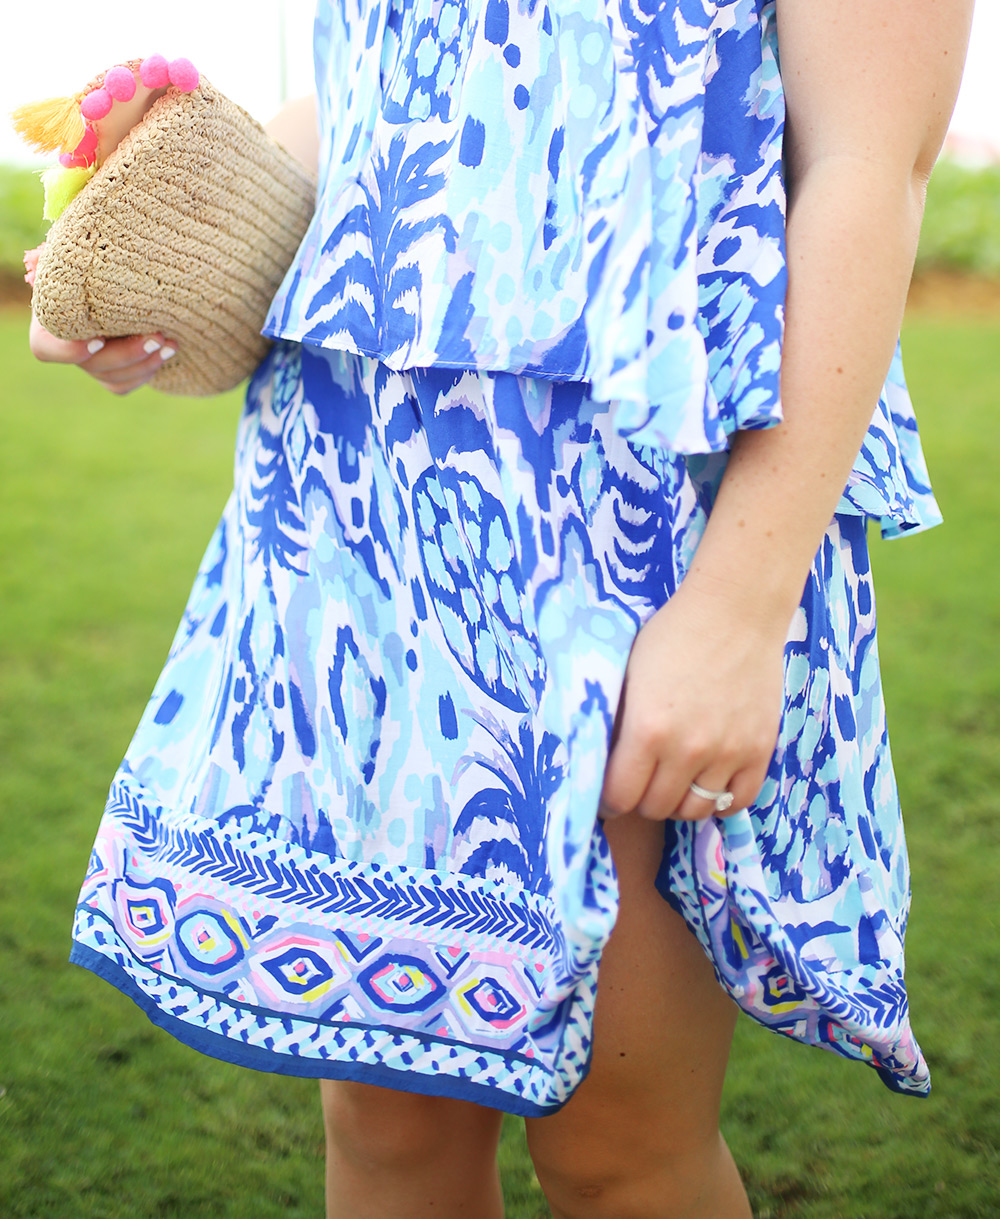 Lilly Pulitzer Pop Over Dress